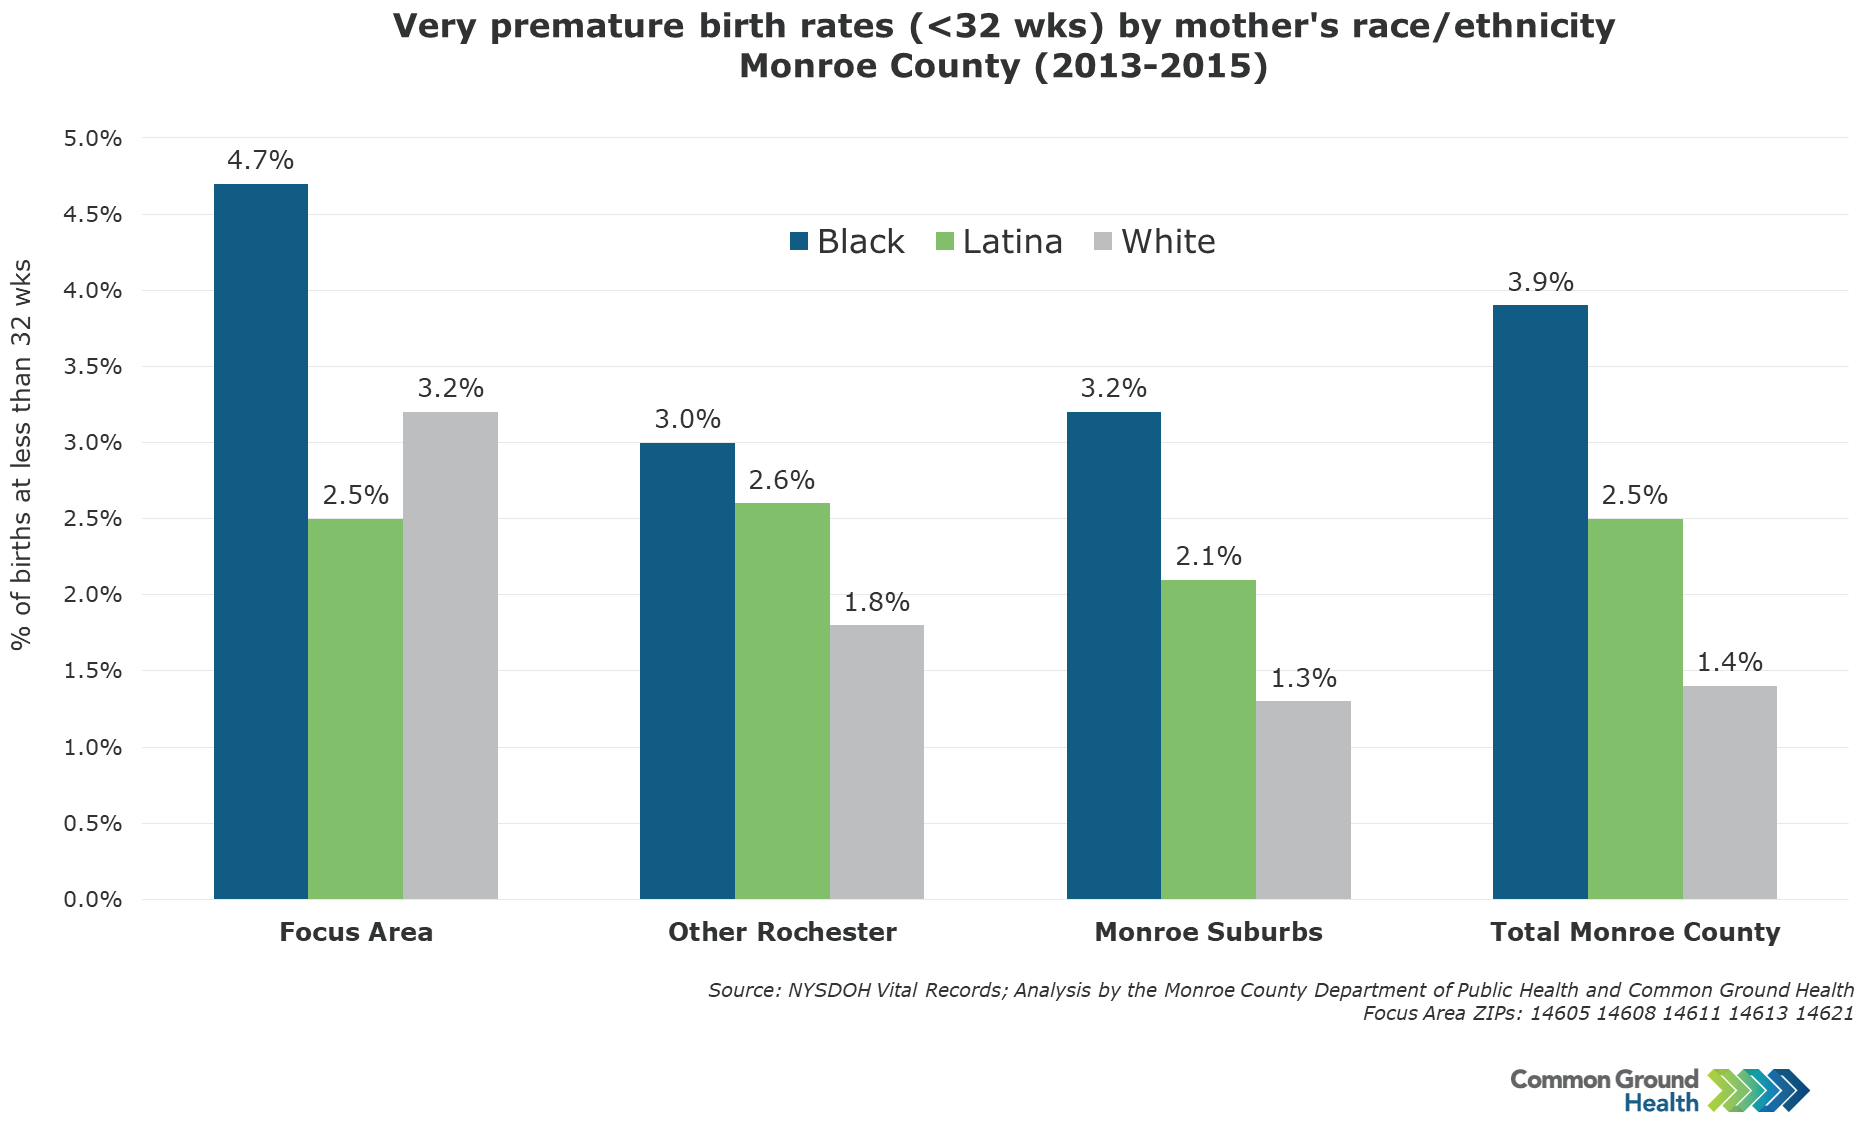 Very Premature Birth Rates (<32 weeks) by Mother's Race/Ethnicity